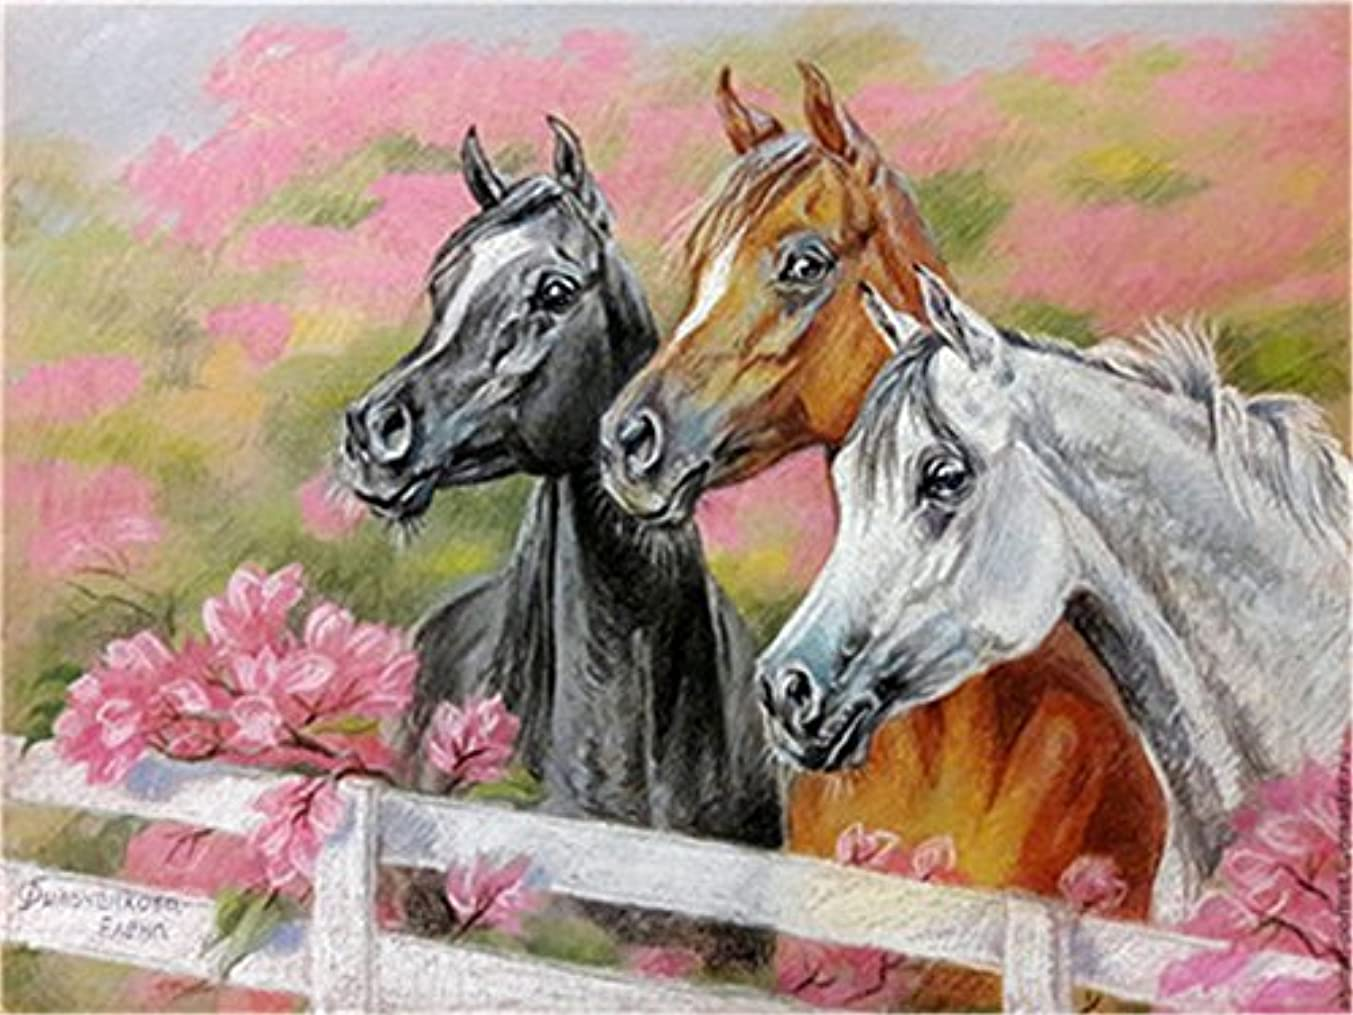 Paint by Numbers Kits DIY Oil Painting Home Decor Wall Value Gift - Three Horses 16X20 Inch (Frame)